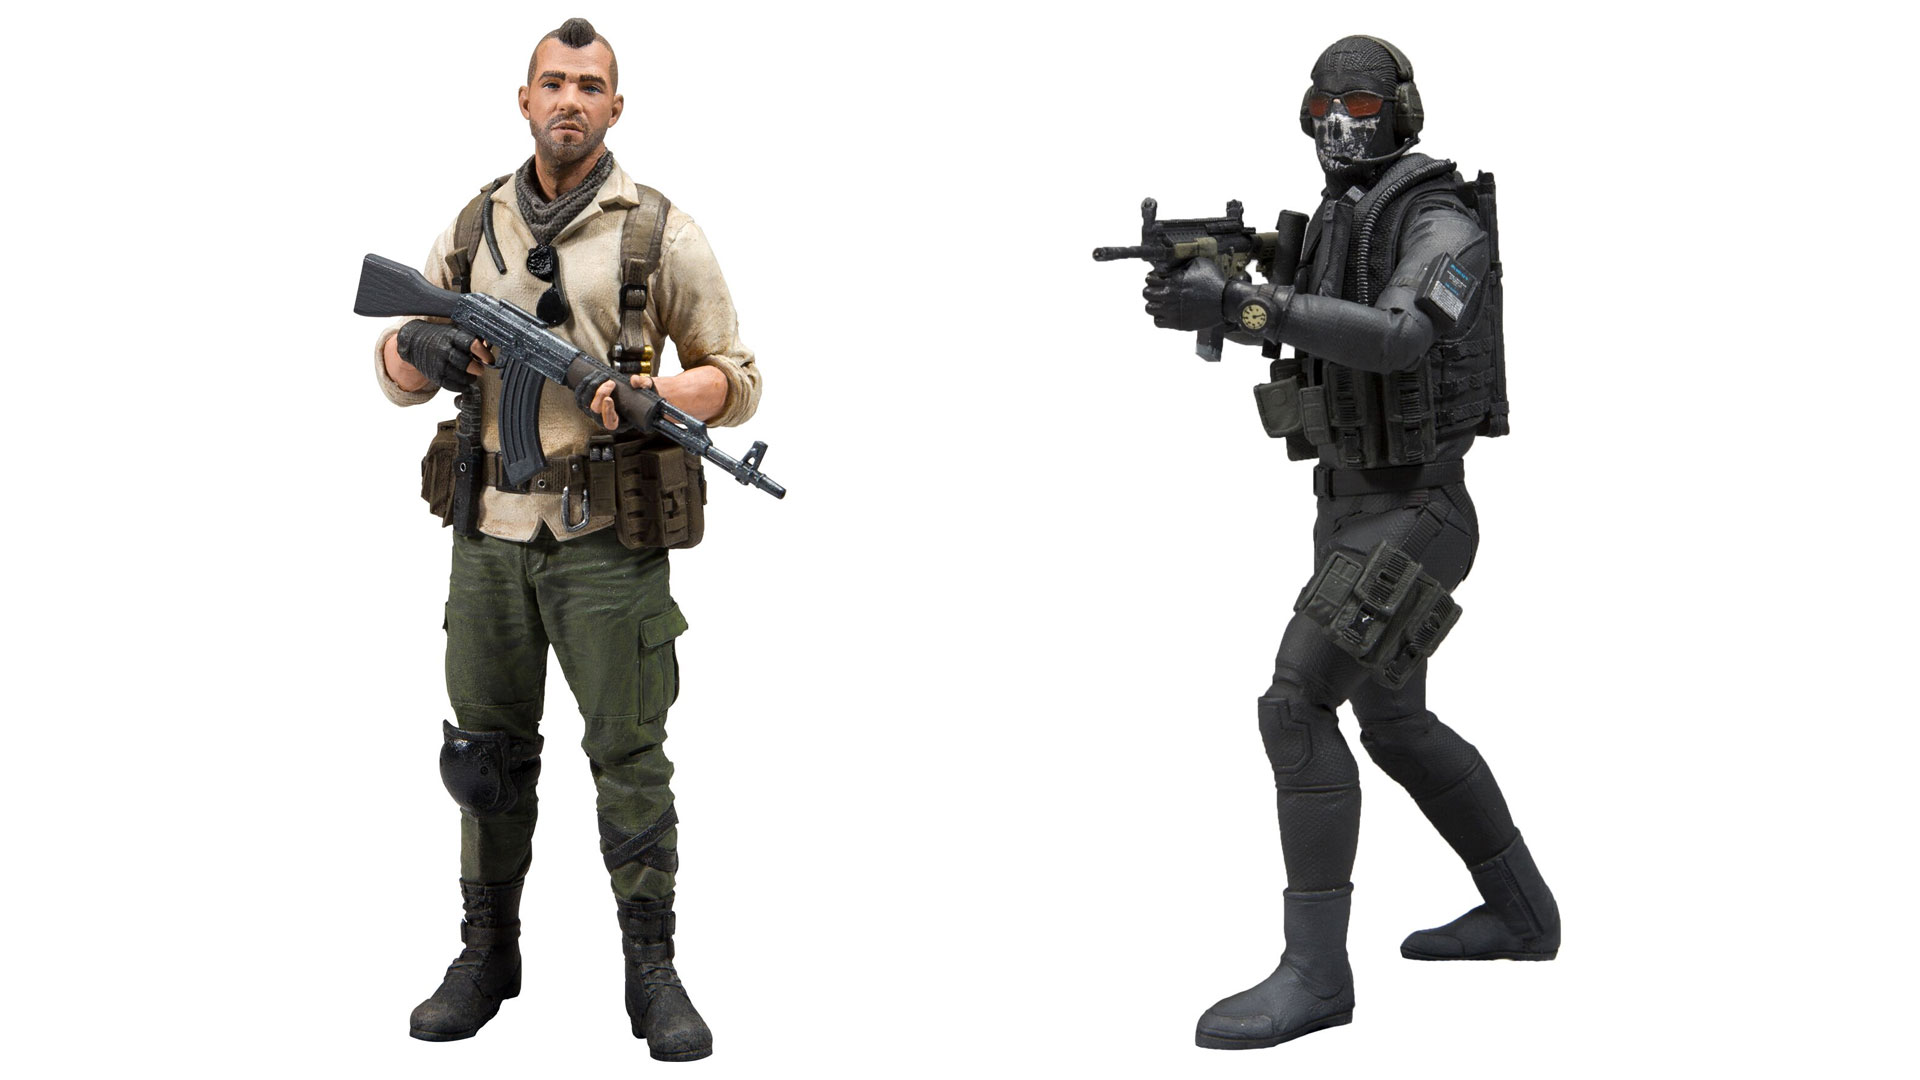 McFarlane Call of Duty Figures